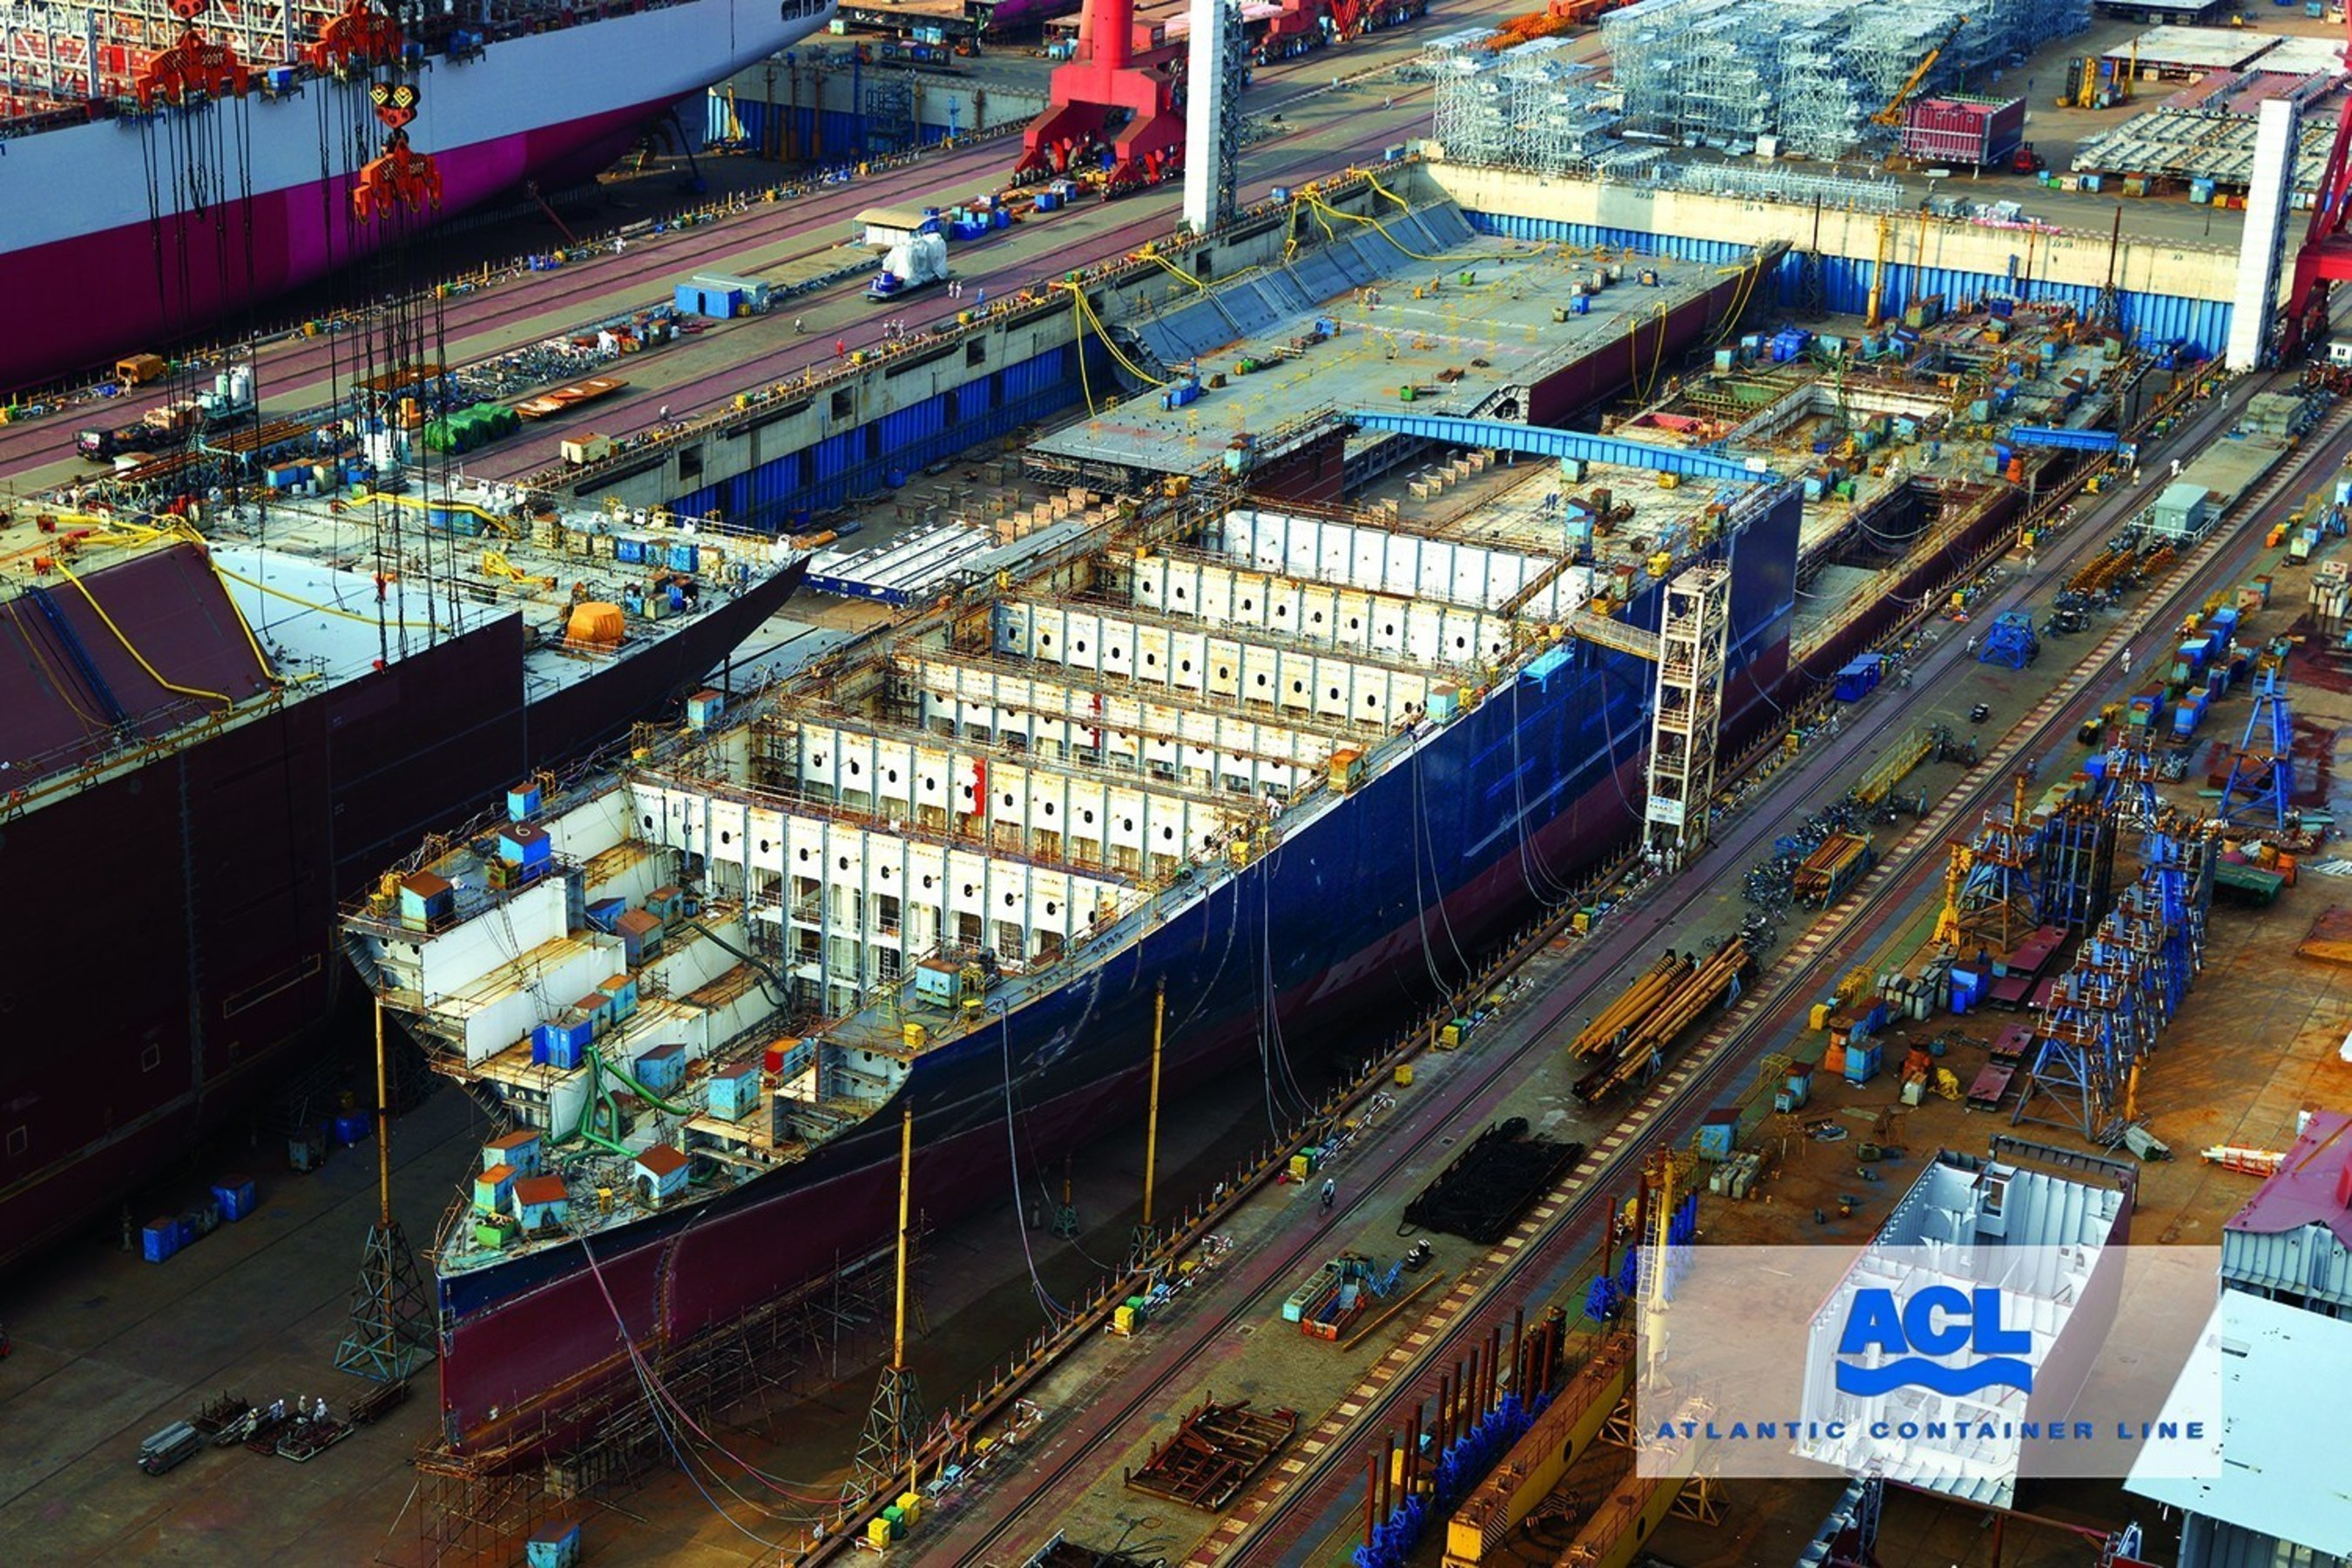 Construction is progressing on Atlantic Container Line's new G4 vessels, which will be the largest RORO/Containerships in the world. The new Generation 4 vessels will be bigger, faster, greener and more efficient than their predecessors. The G4's will have a container capacity of 3,800 TEUs plus 28,900 square meters of RORO space, with a car capacity of 1307 vehicles. The new ships will continue to employ cell-guides on deck, a feature that will allow ACL to extend its enviable record of never losing a...